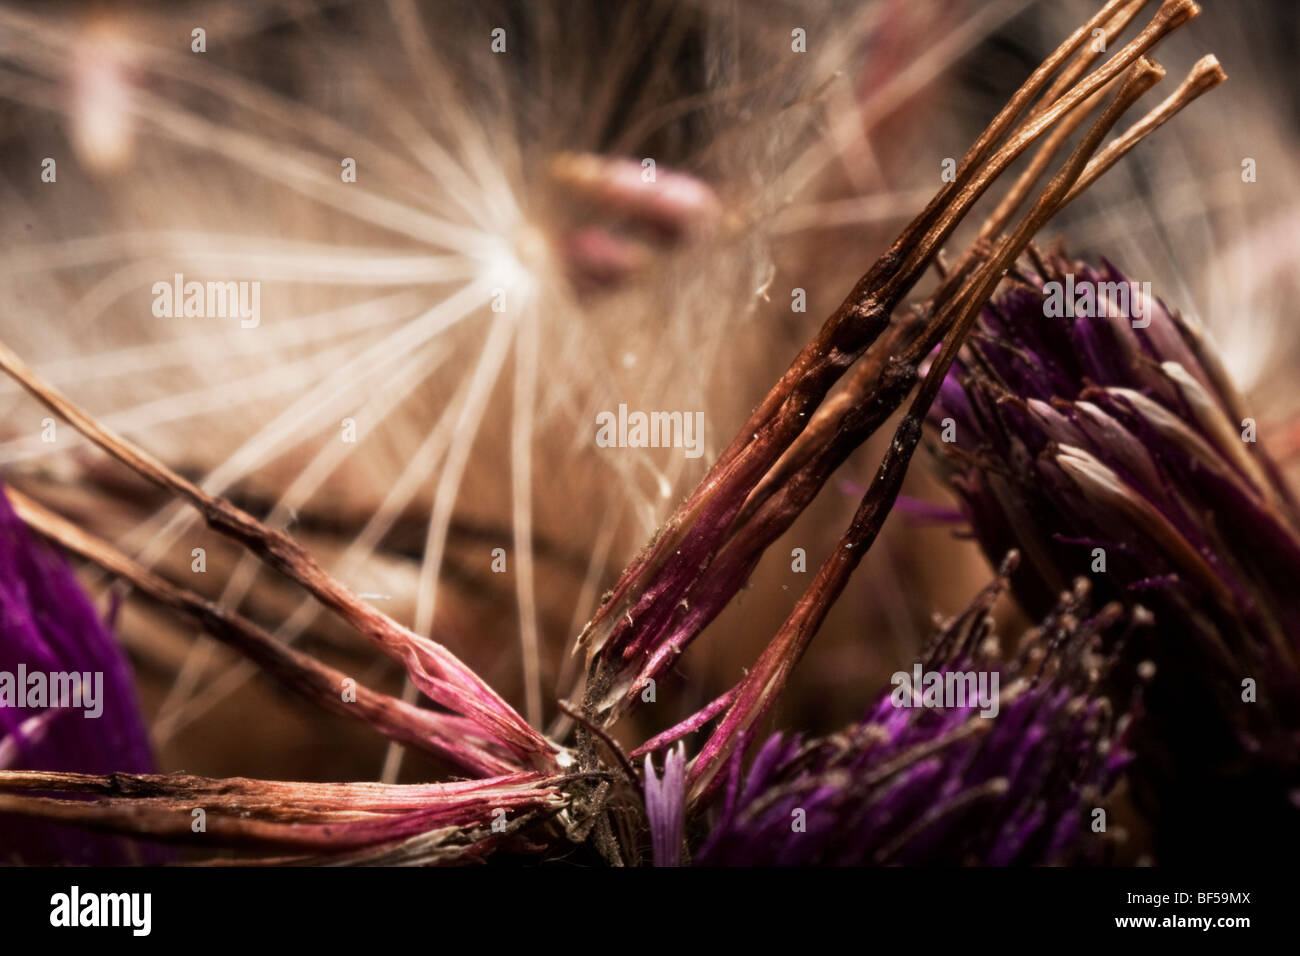 Dried flowers - Stock Image